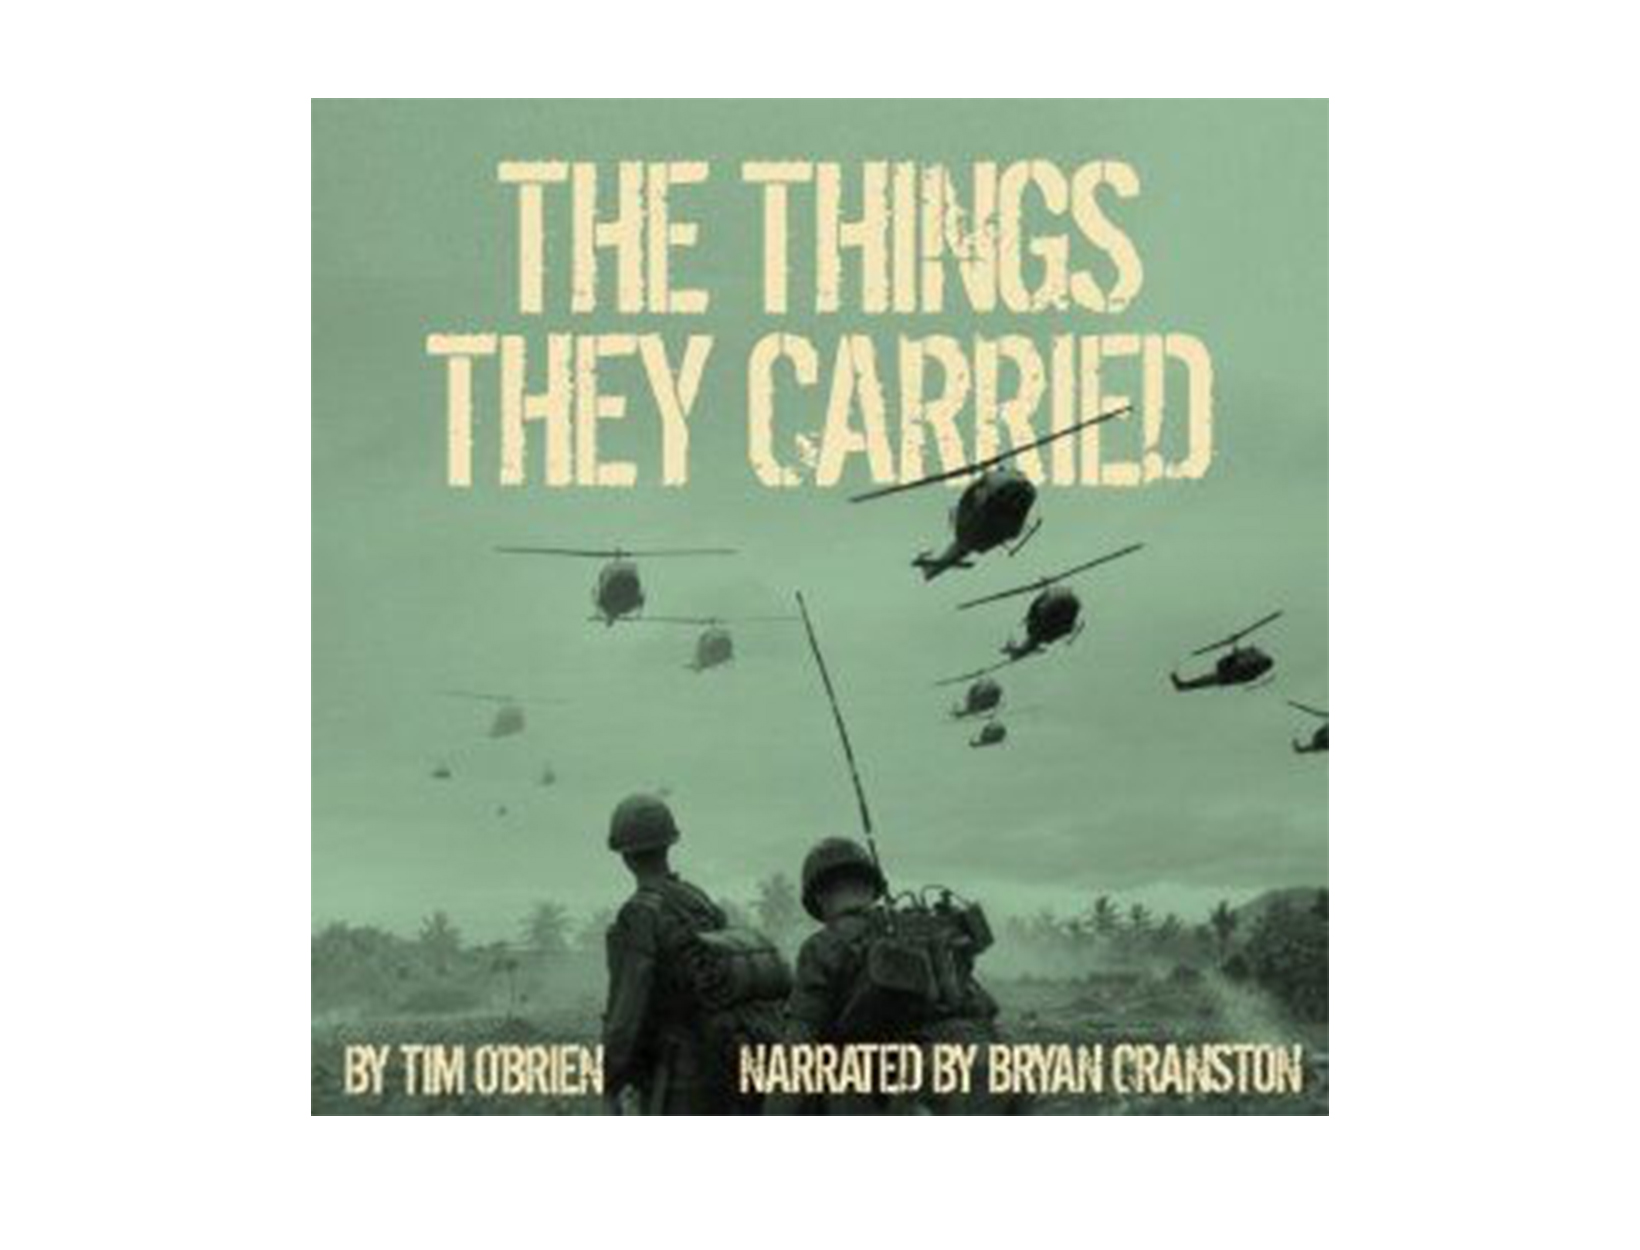 The Things They Carried by Tim O'Brien, read by Bryan Cranston